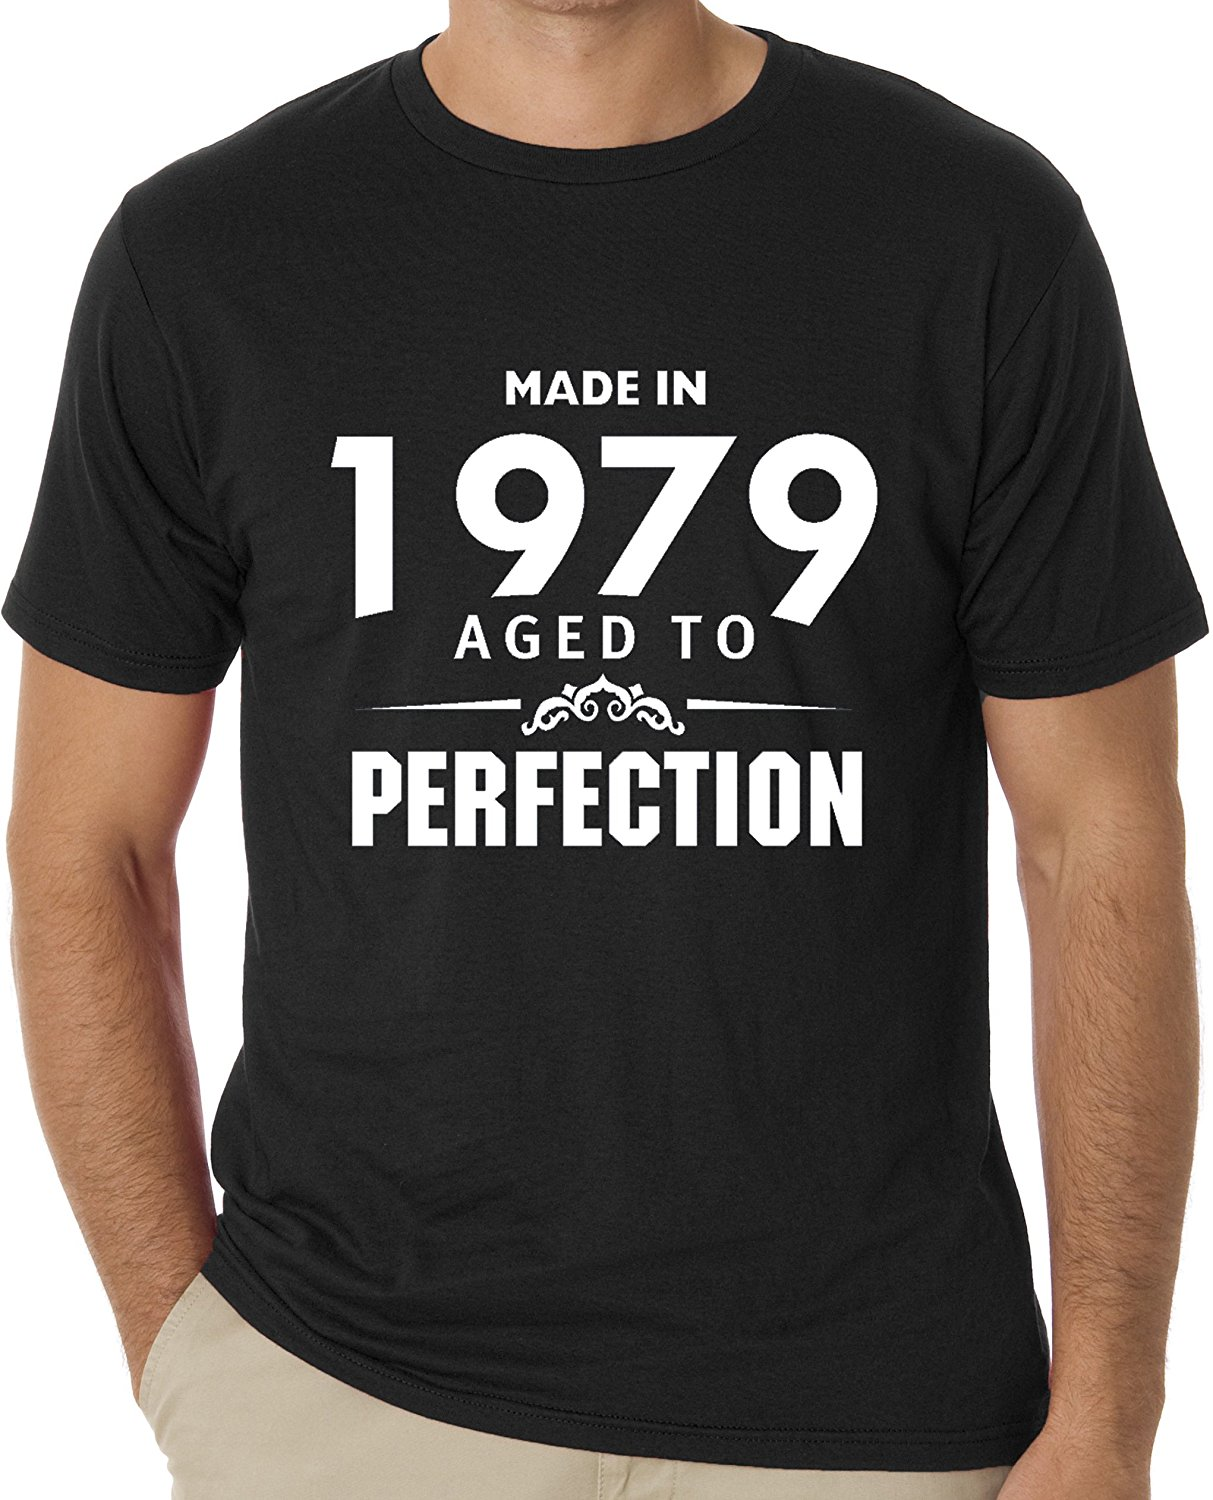 Design t shirt graphics online - Tee Shirts Online Made In 1979 Aged To Perfection O Neck Men Short Graphic T